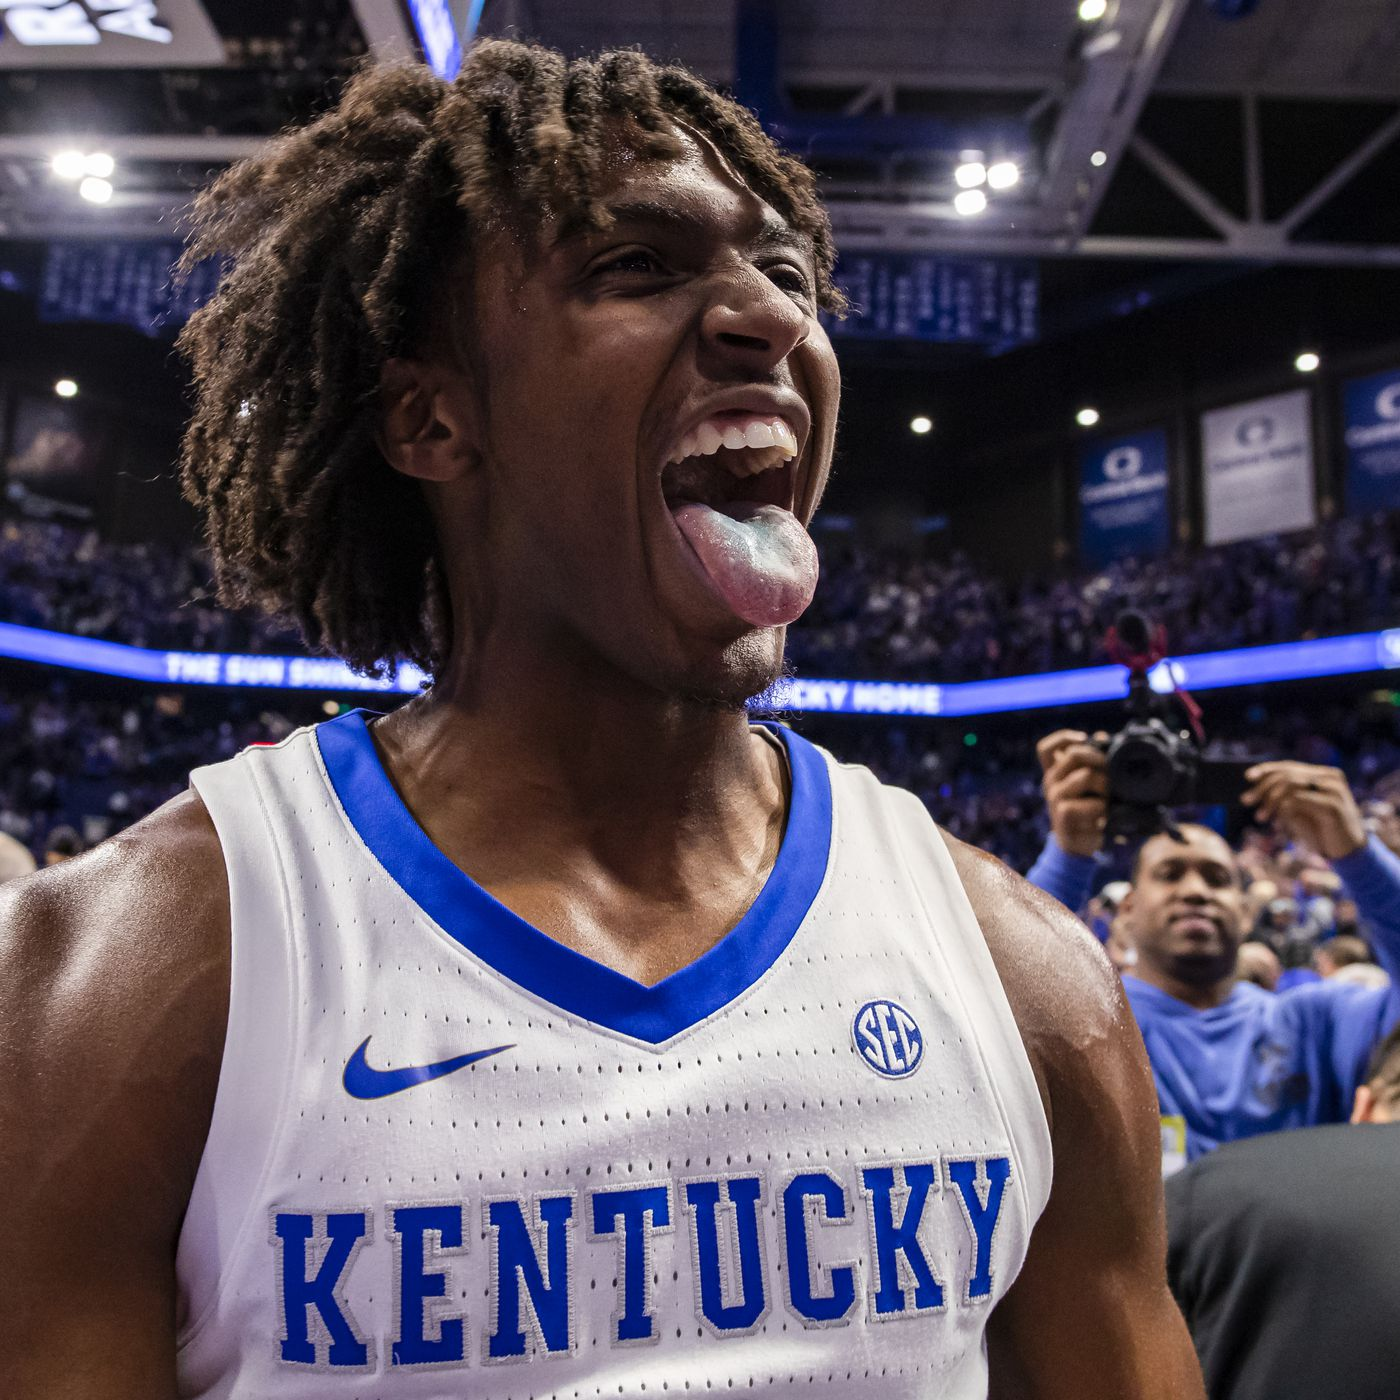 Potential 2020 Nba Draft Targets For The Spurs Tyrese Maxey Pounding The Rock